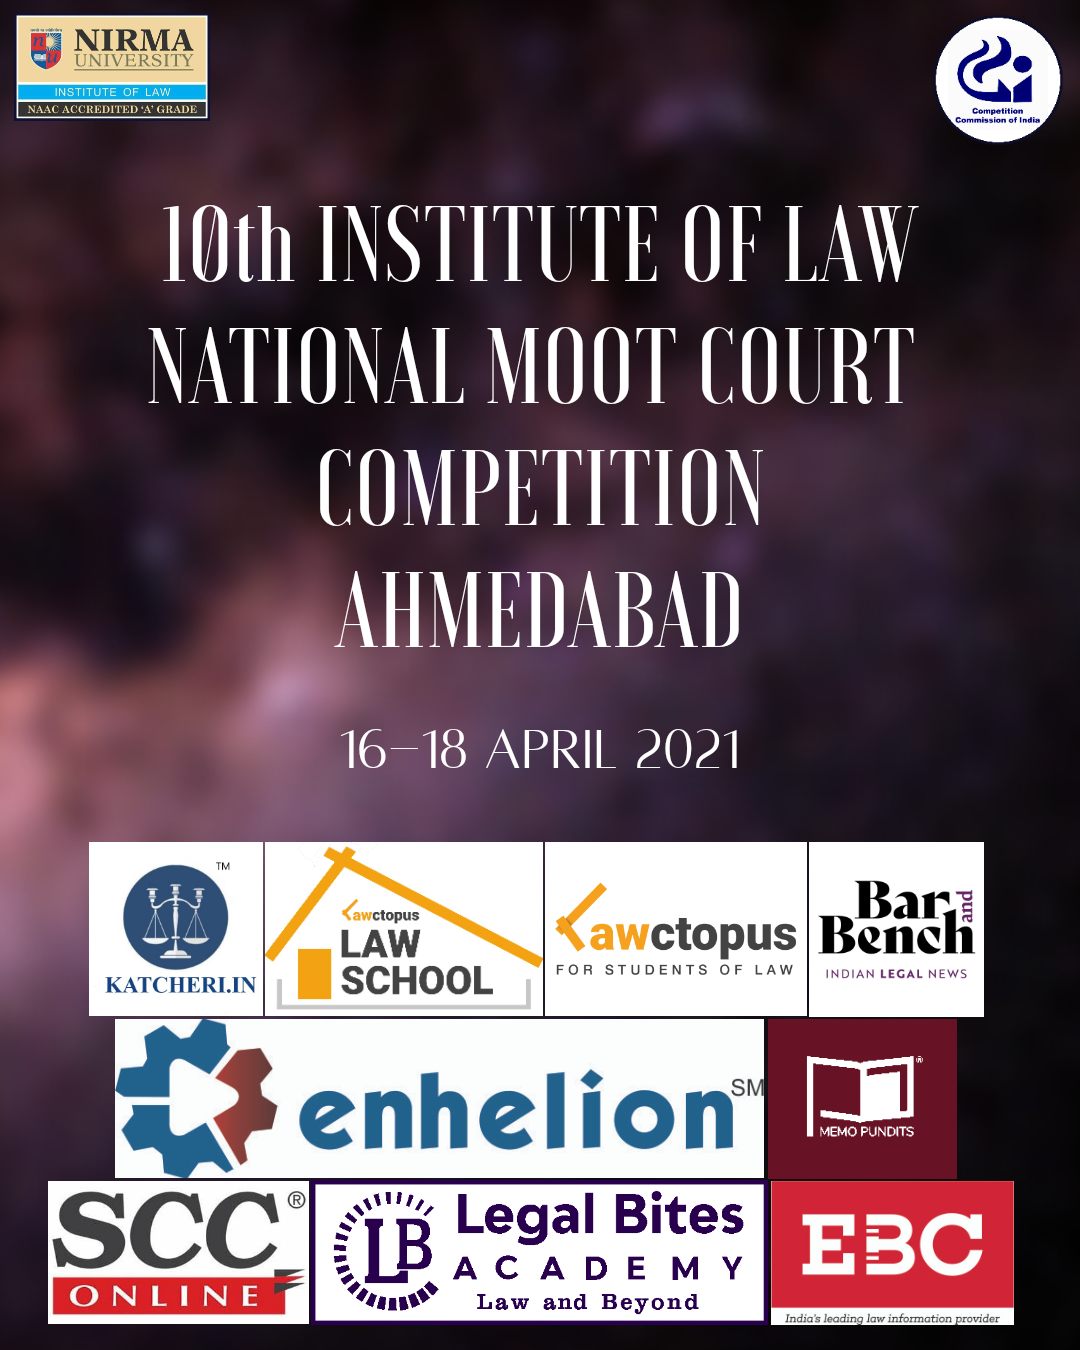 10th Institute of Law Moot Court Competition 2021